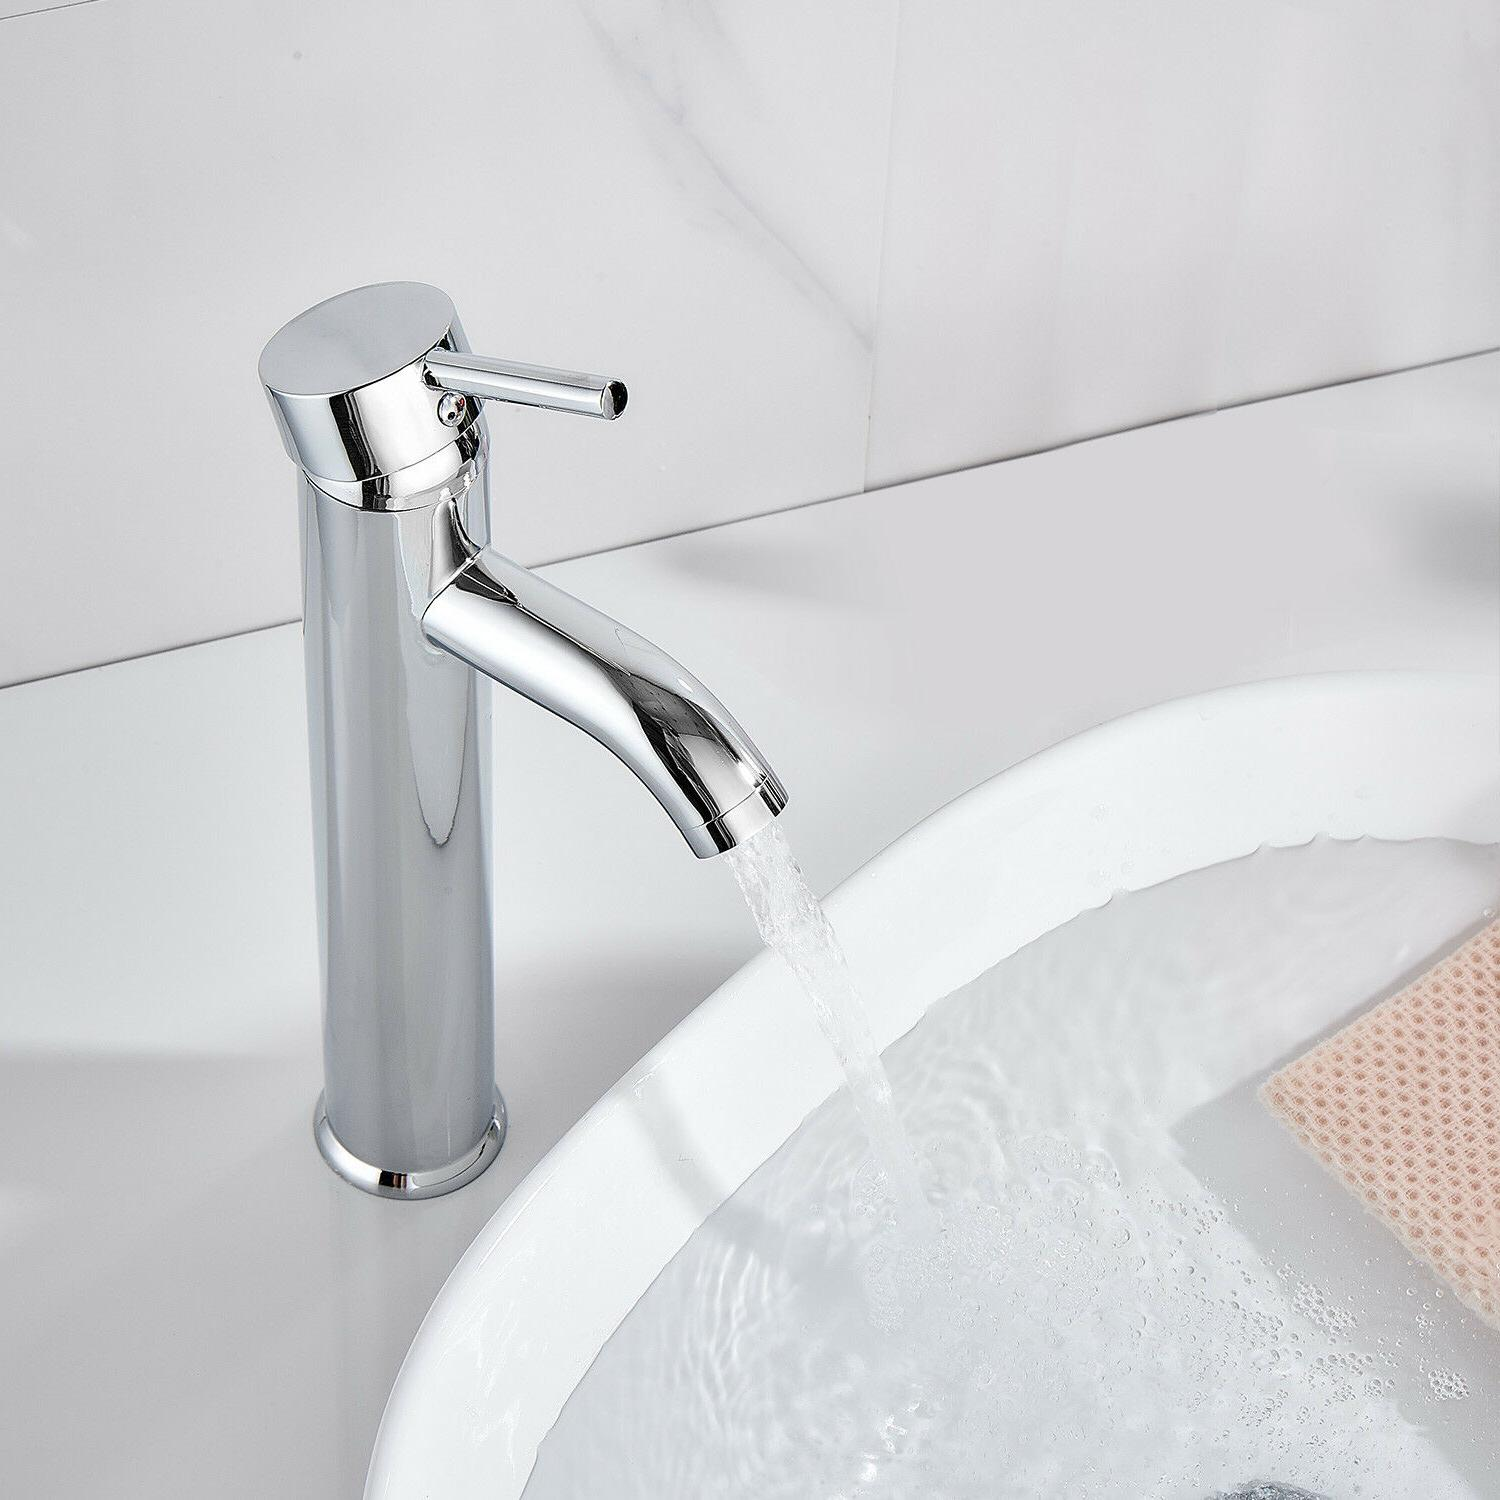 HOROW Vessel Faucet Handle One